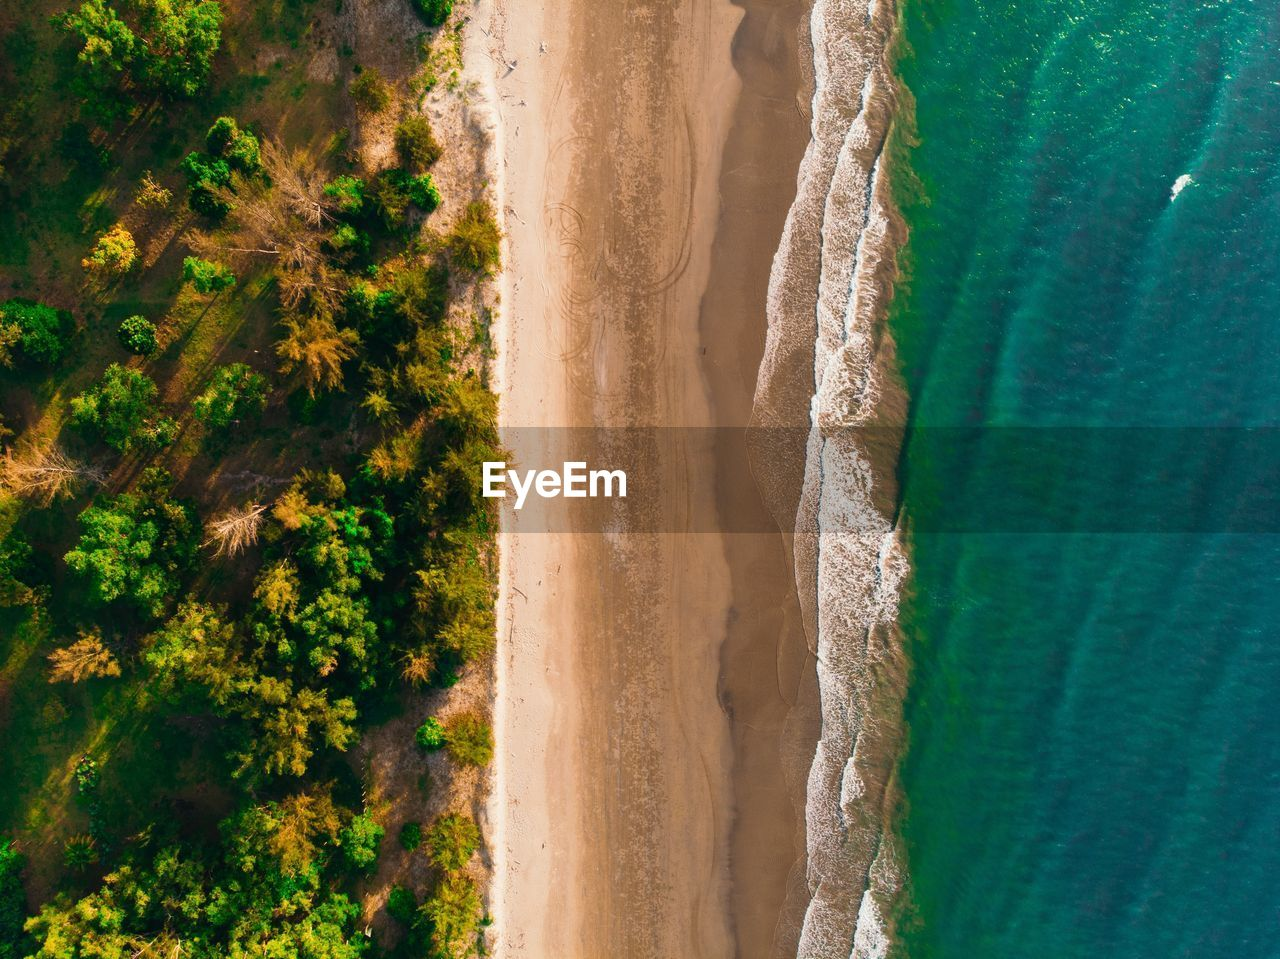 land, scenics - nature, plant, sand, green color, nature, beach, day, water, no people, tree, beauty in nature, outdoors, tranquil scene, sea, environment, tranquility, landscape, motion, arid climate